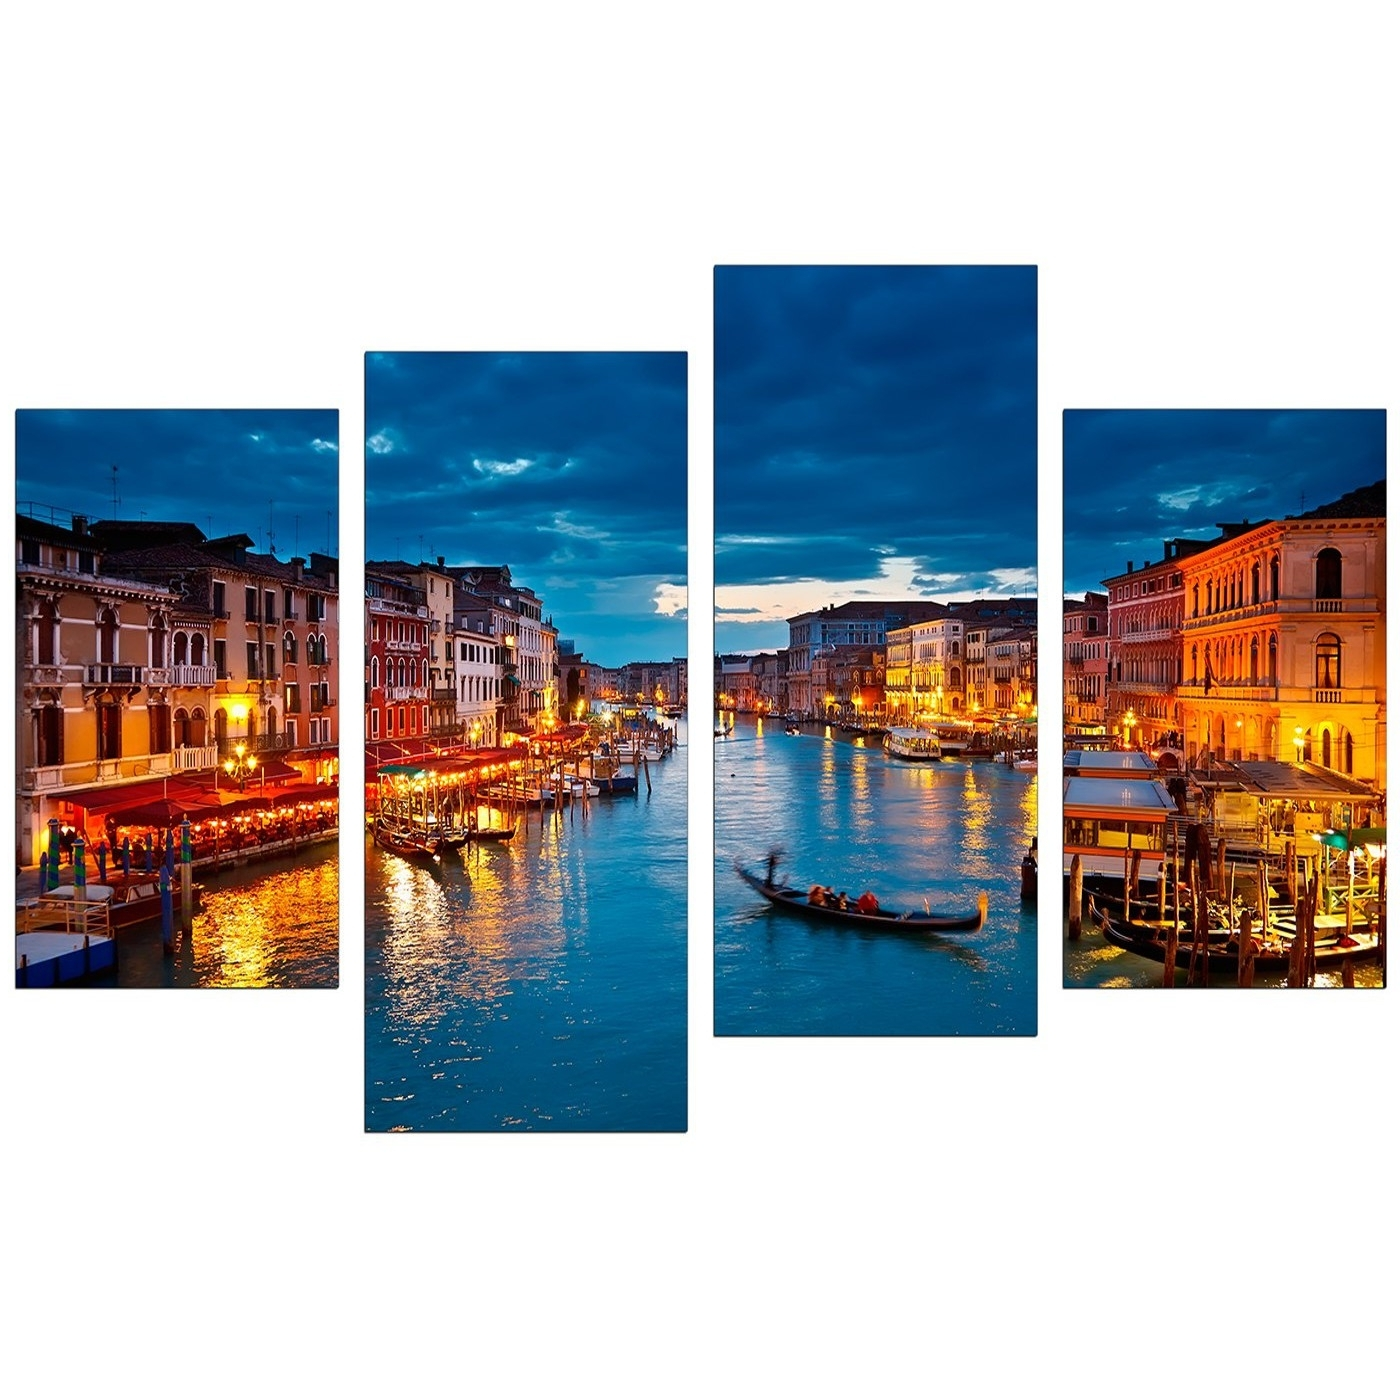 Canvas Pictures Of Venice Italy For Your Living Room – 4 Panel In Widely Used Italian Scenery Wall Art (View 1 of 15)